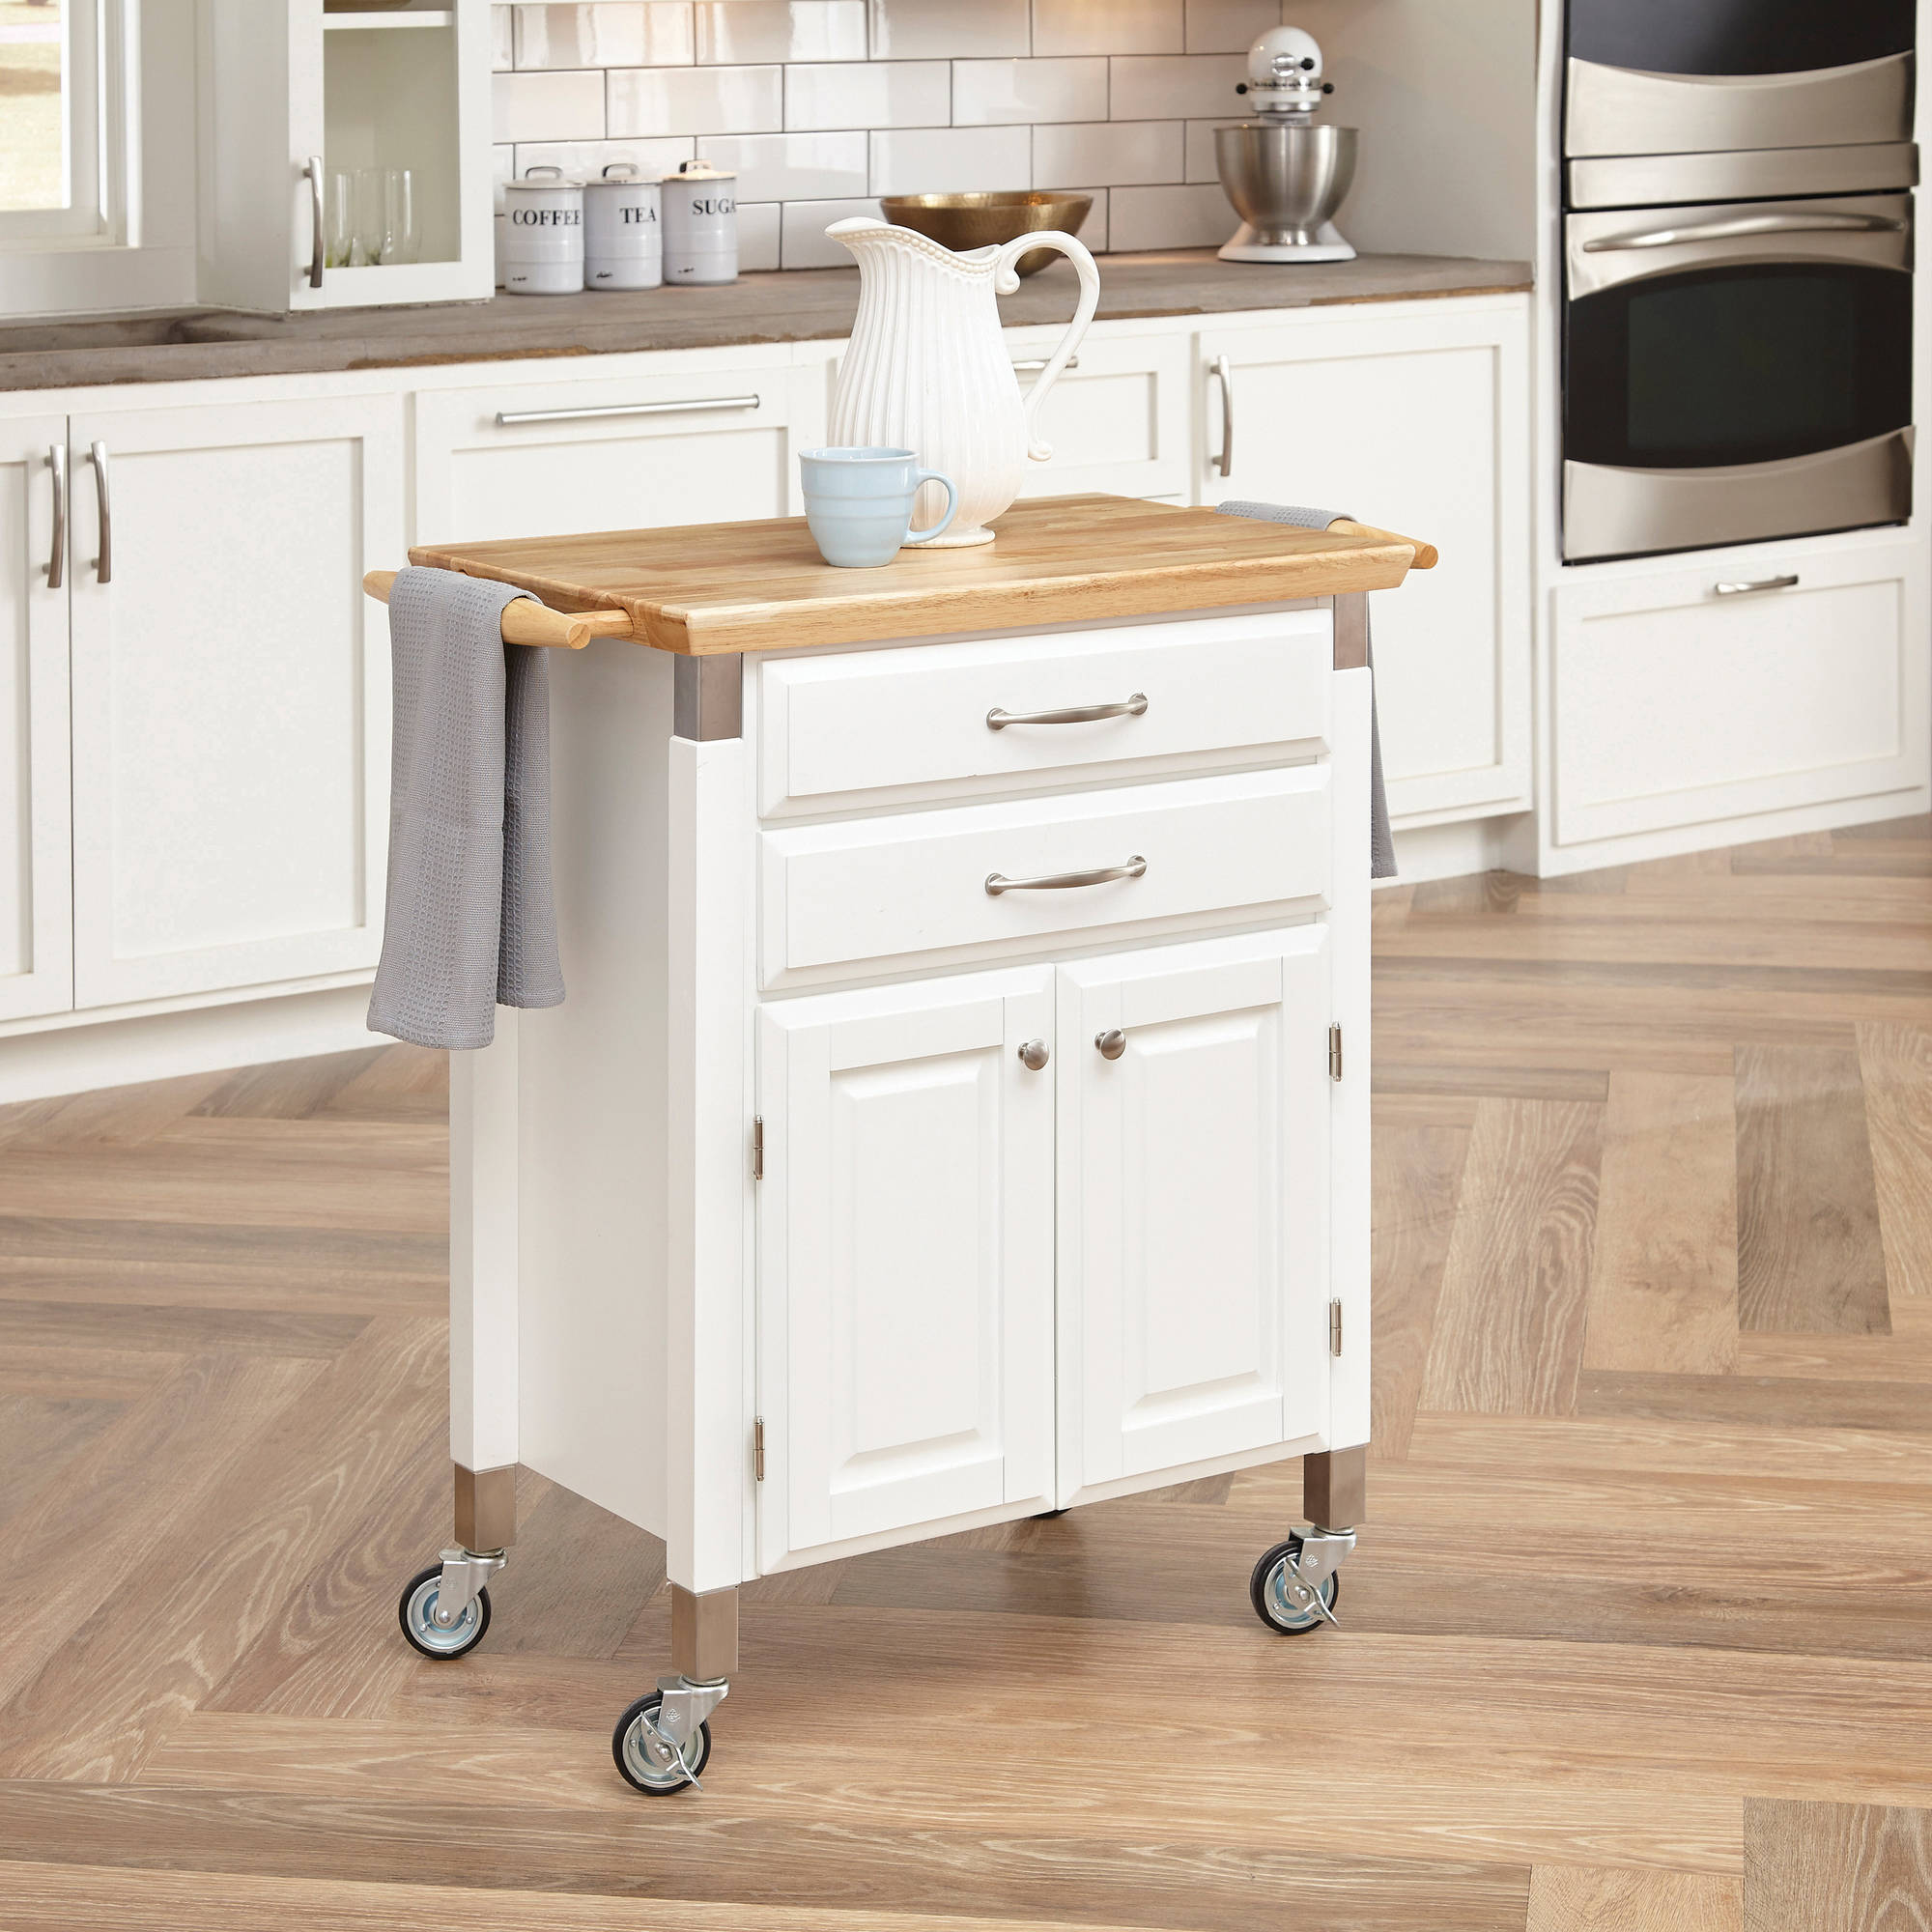 Home Styles Dolly Madison Prep and Serve Kitchen Cart, White